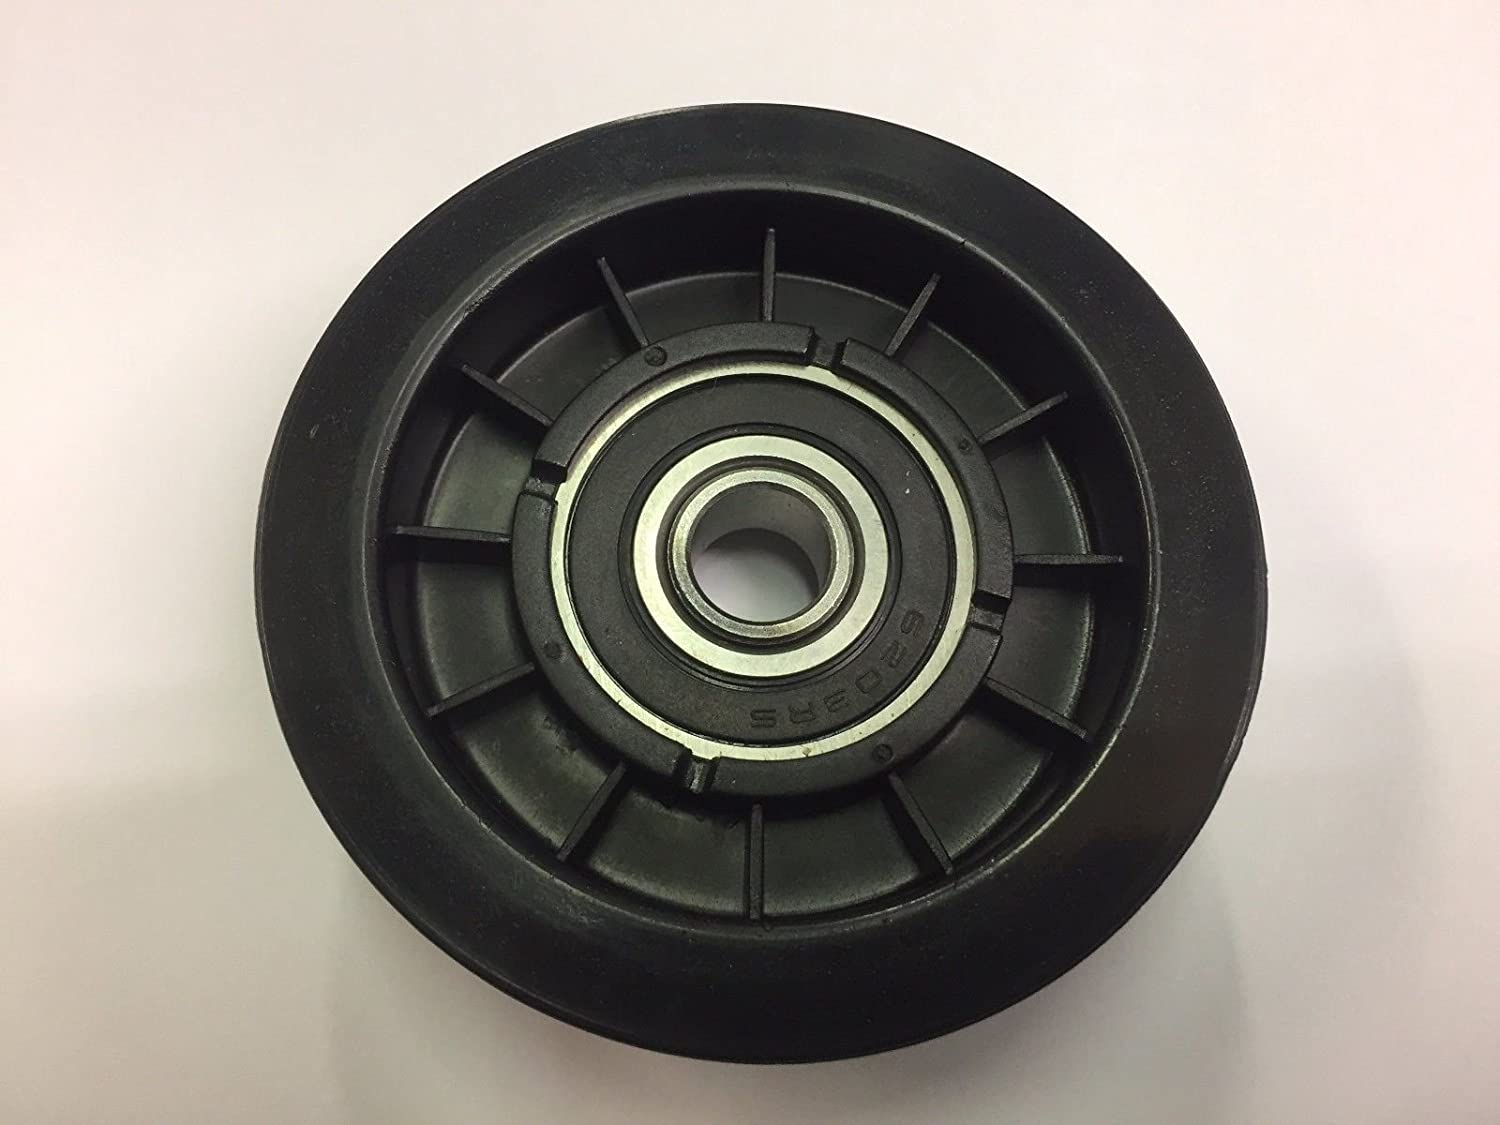 Genuine Mountfield Ride on Mower Plastic Idler Pulley fits T40H, 1236M, 1436M, 1640H, 2040H Part no. 125601554/0 GGP